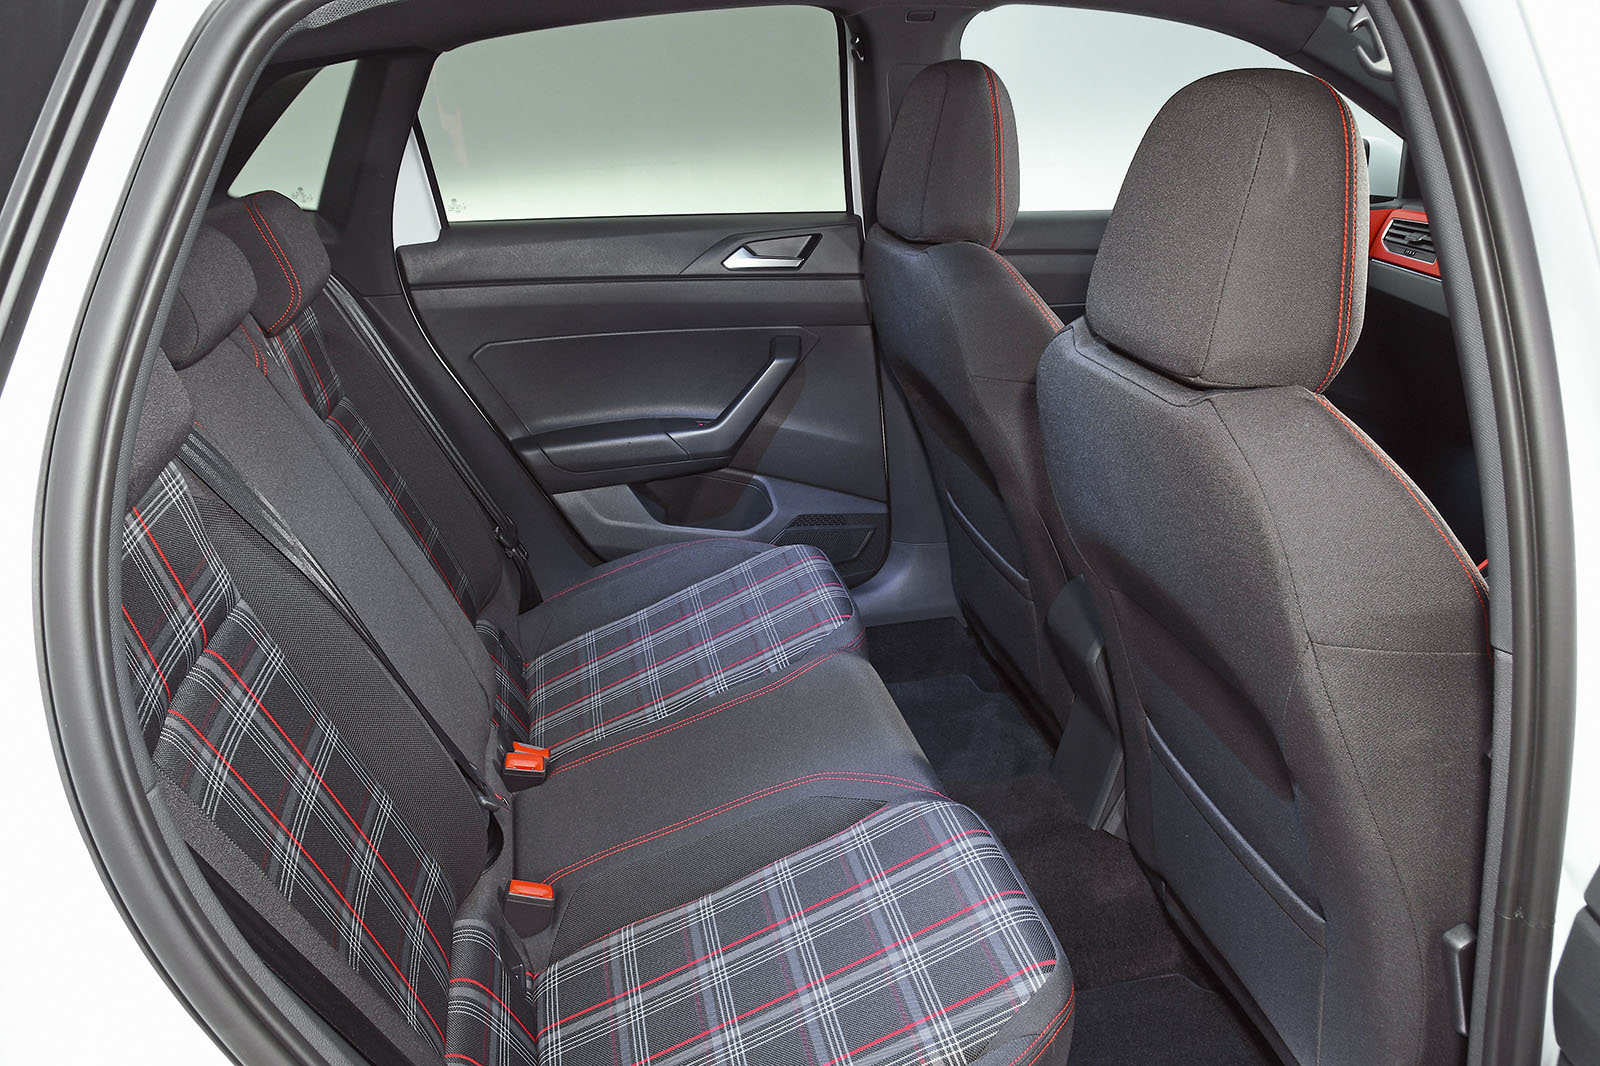 2018 Volkswagen Polo GTI rear seats